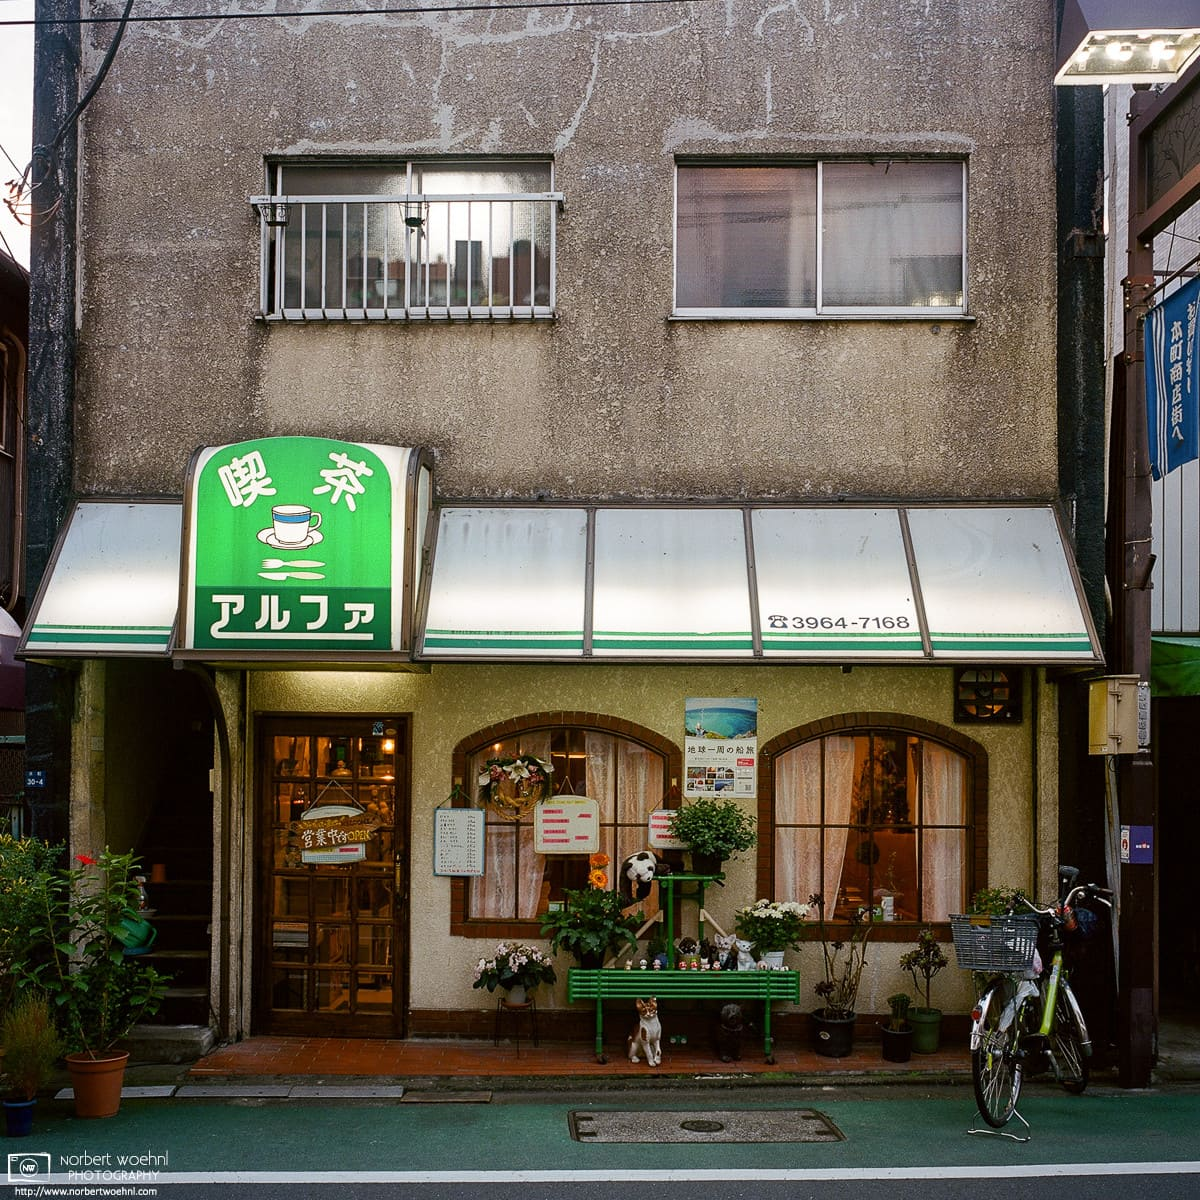 In the Honcho (本町) neighborhood of Tokyo's Itabashi-ku, I took this exterior photo of the Alpha (アルファ) Café at dusk.